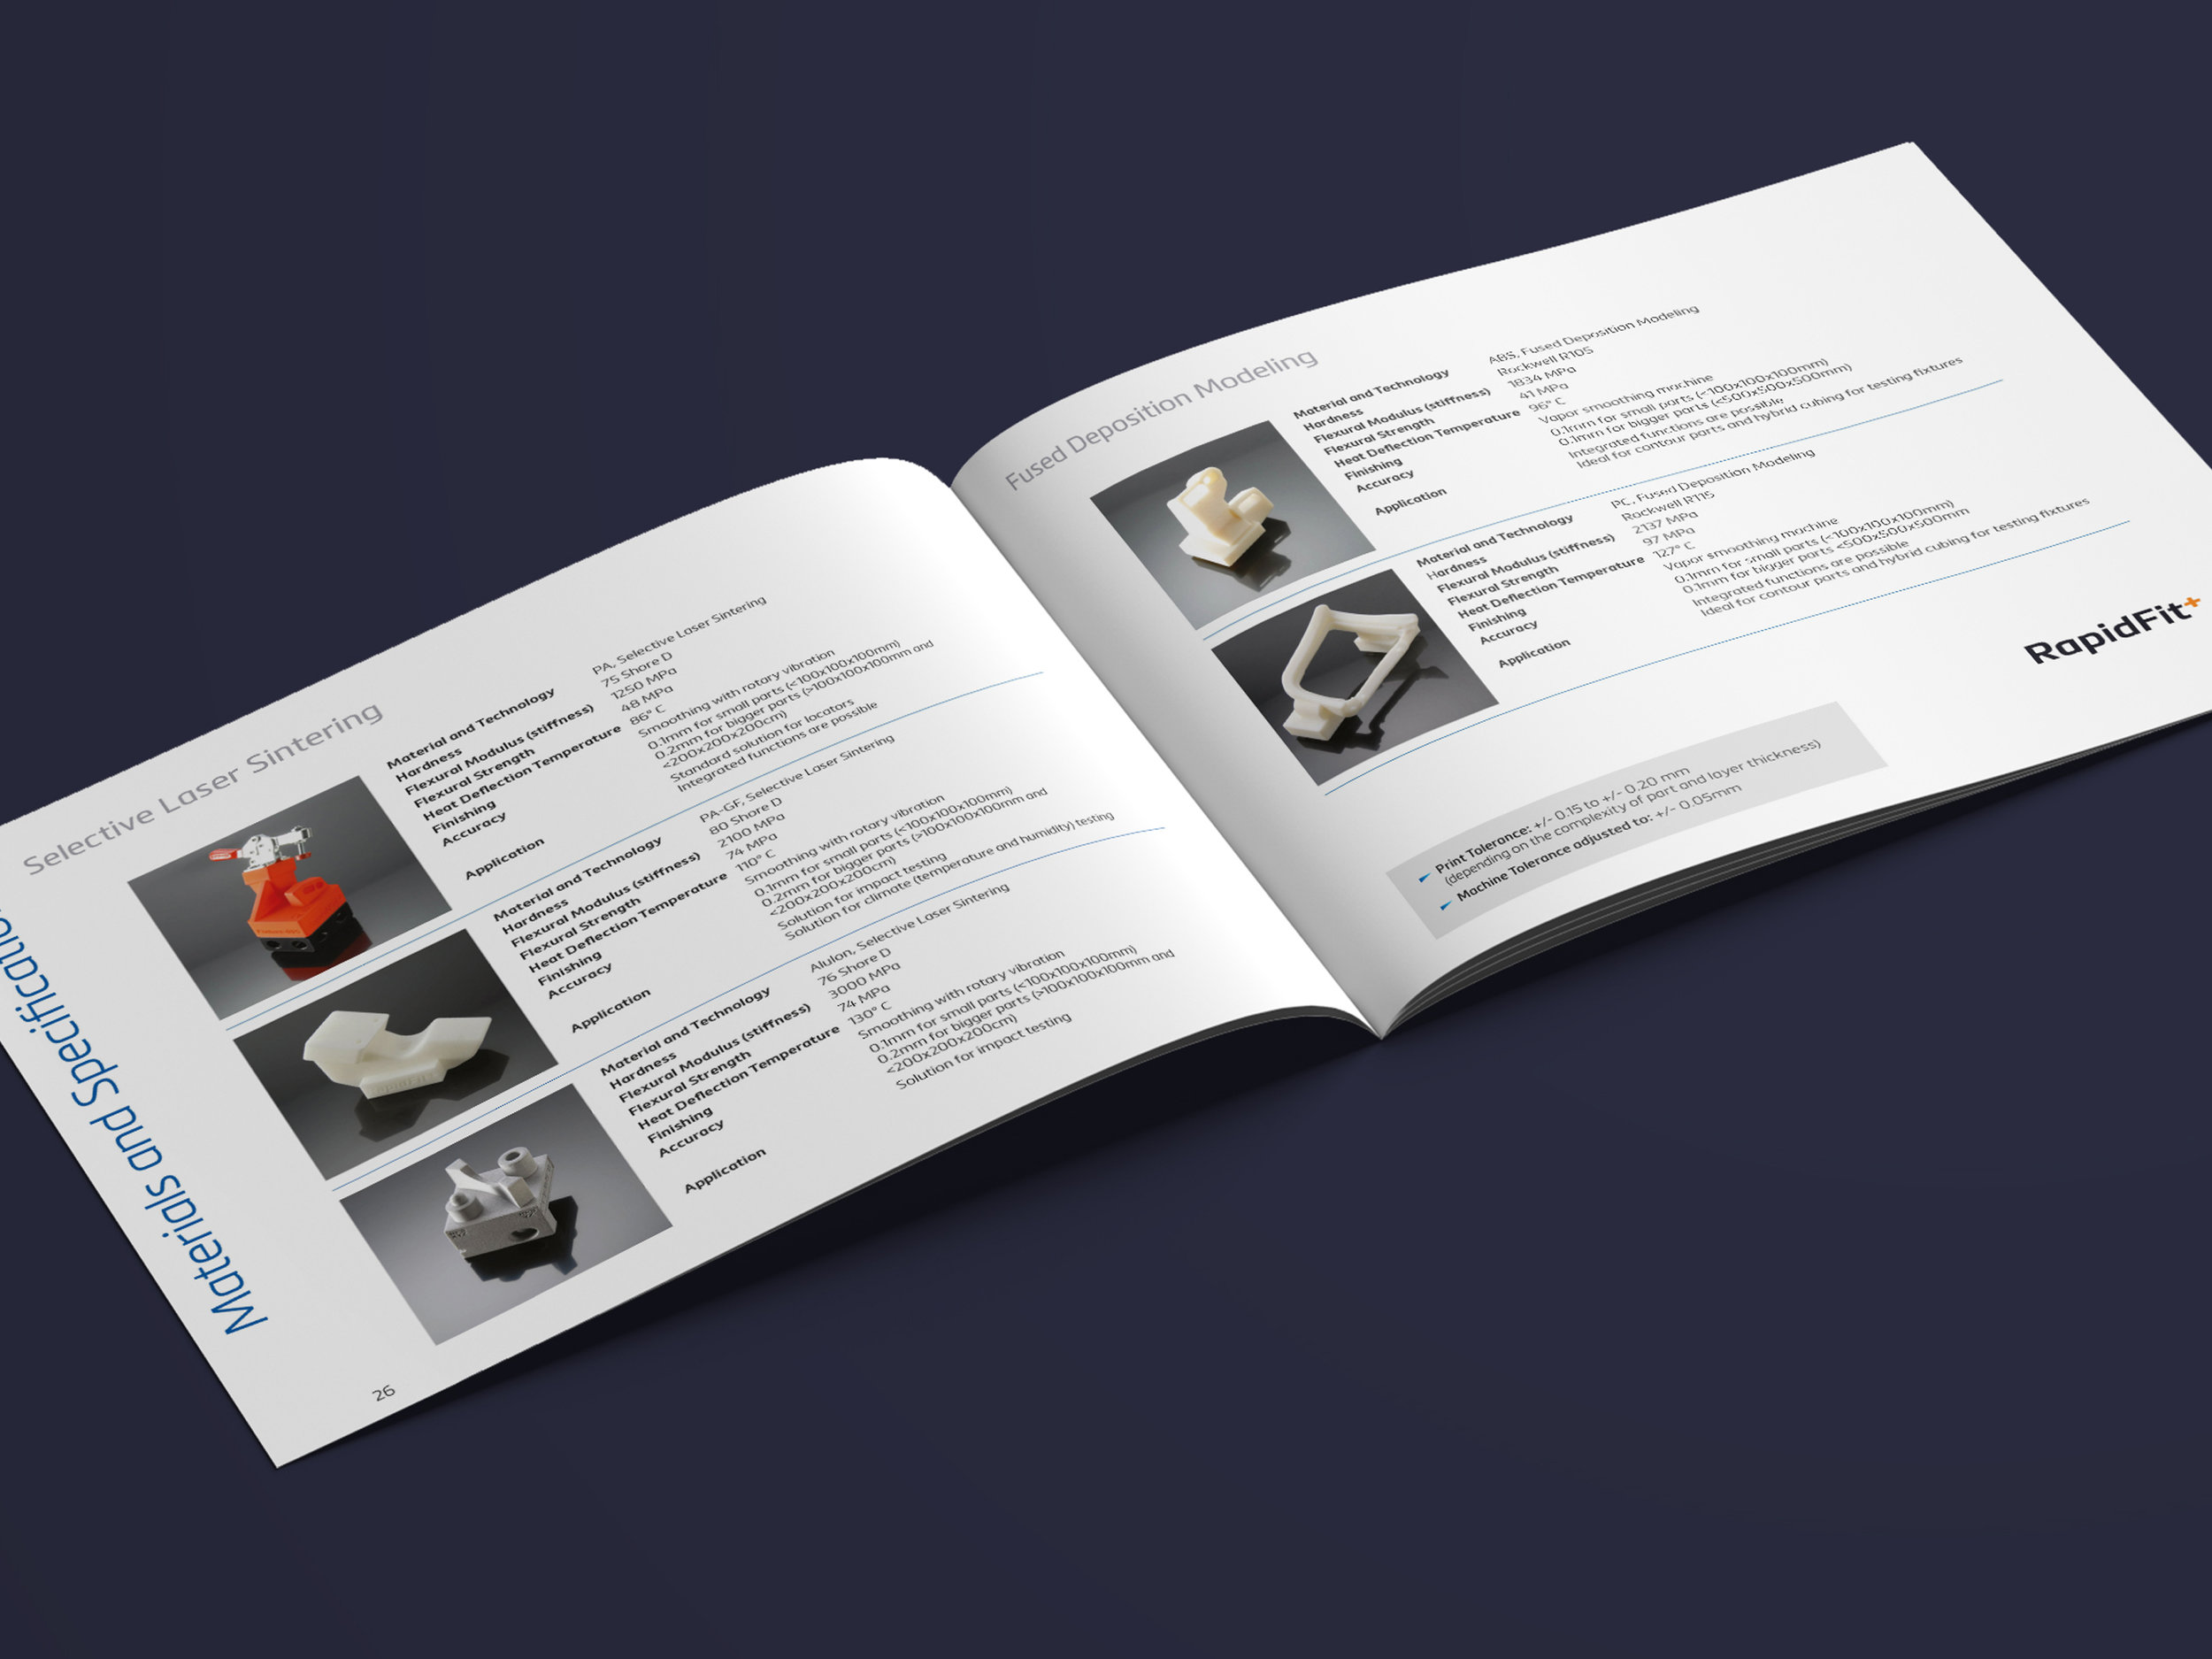 Materialise RapidFit brochure